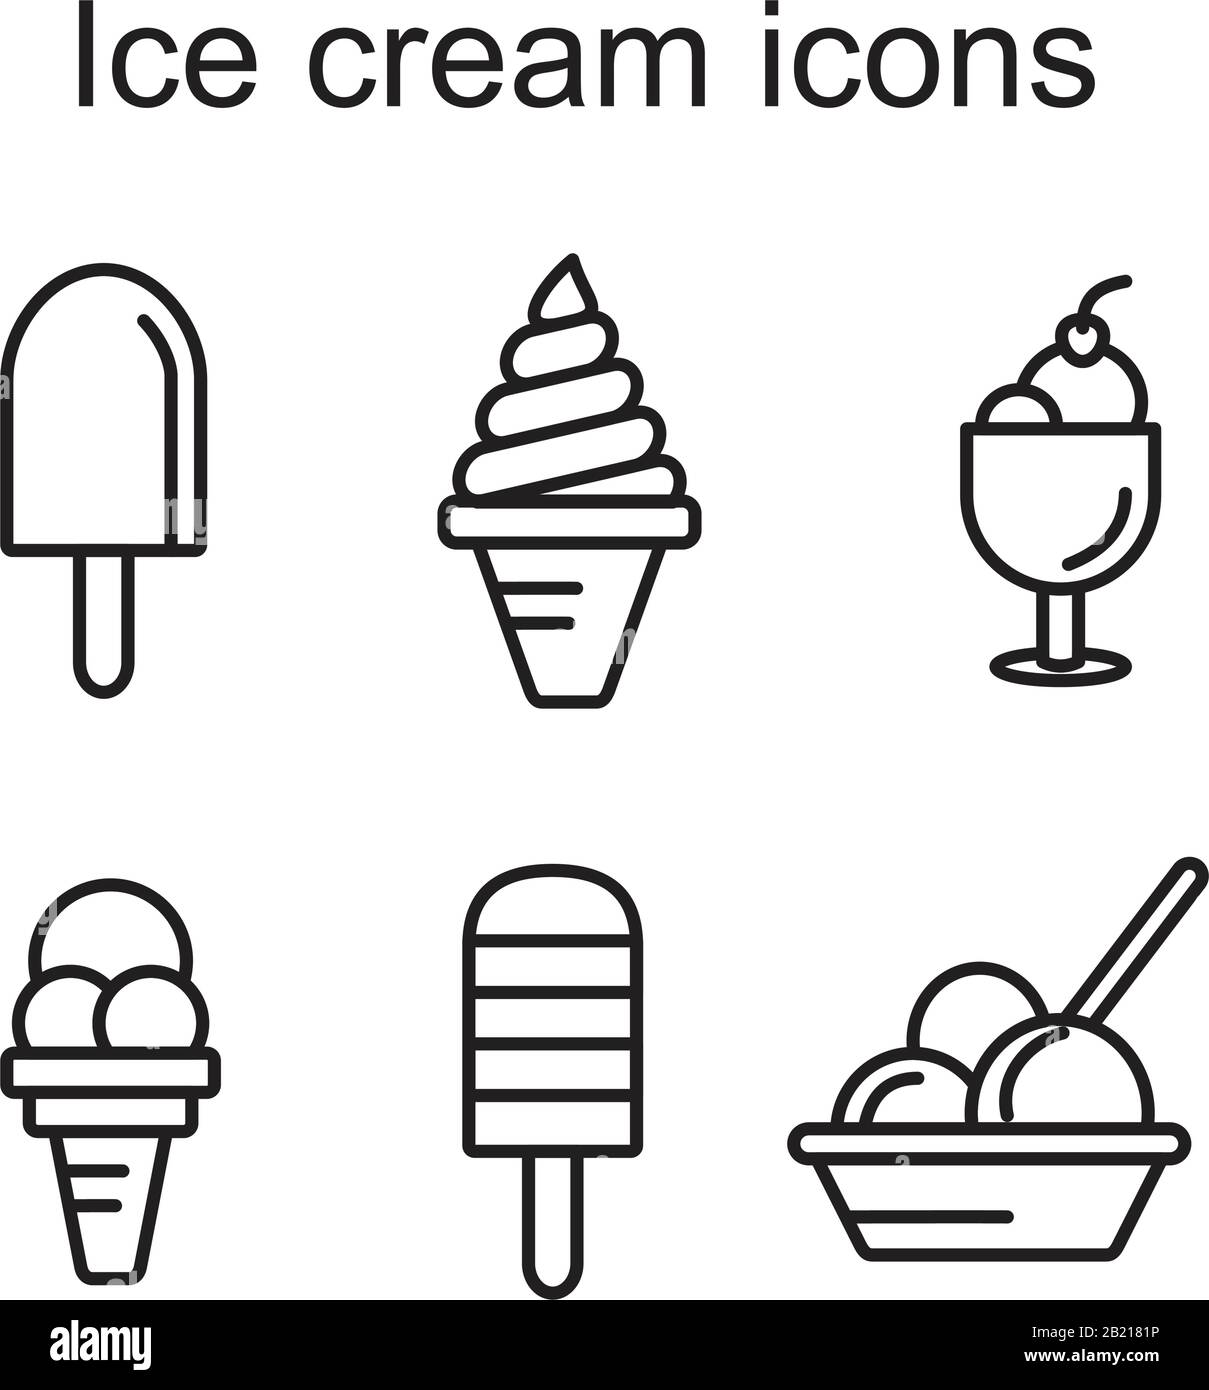 ice cream icon template black color editable ice cream symbol flat vector illustration for graphic and web design stock vector image art alamy https www alamy com ice cream icon template black color editable ice cream symbol flat vector illustration for graphic and web design image345464946 html